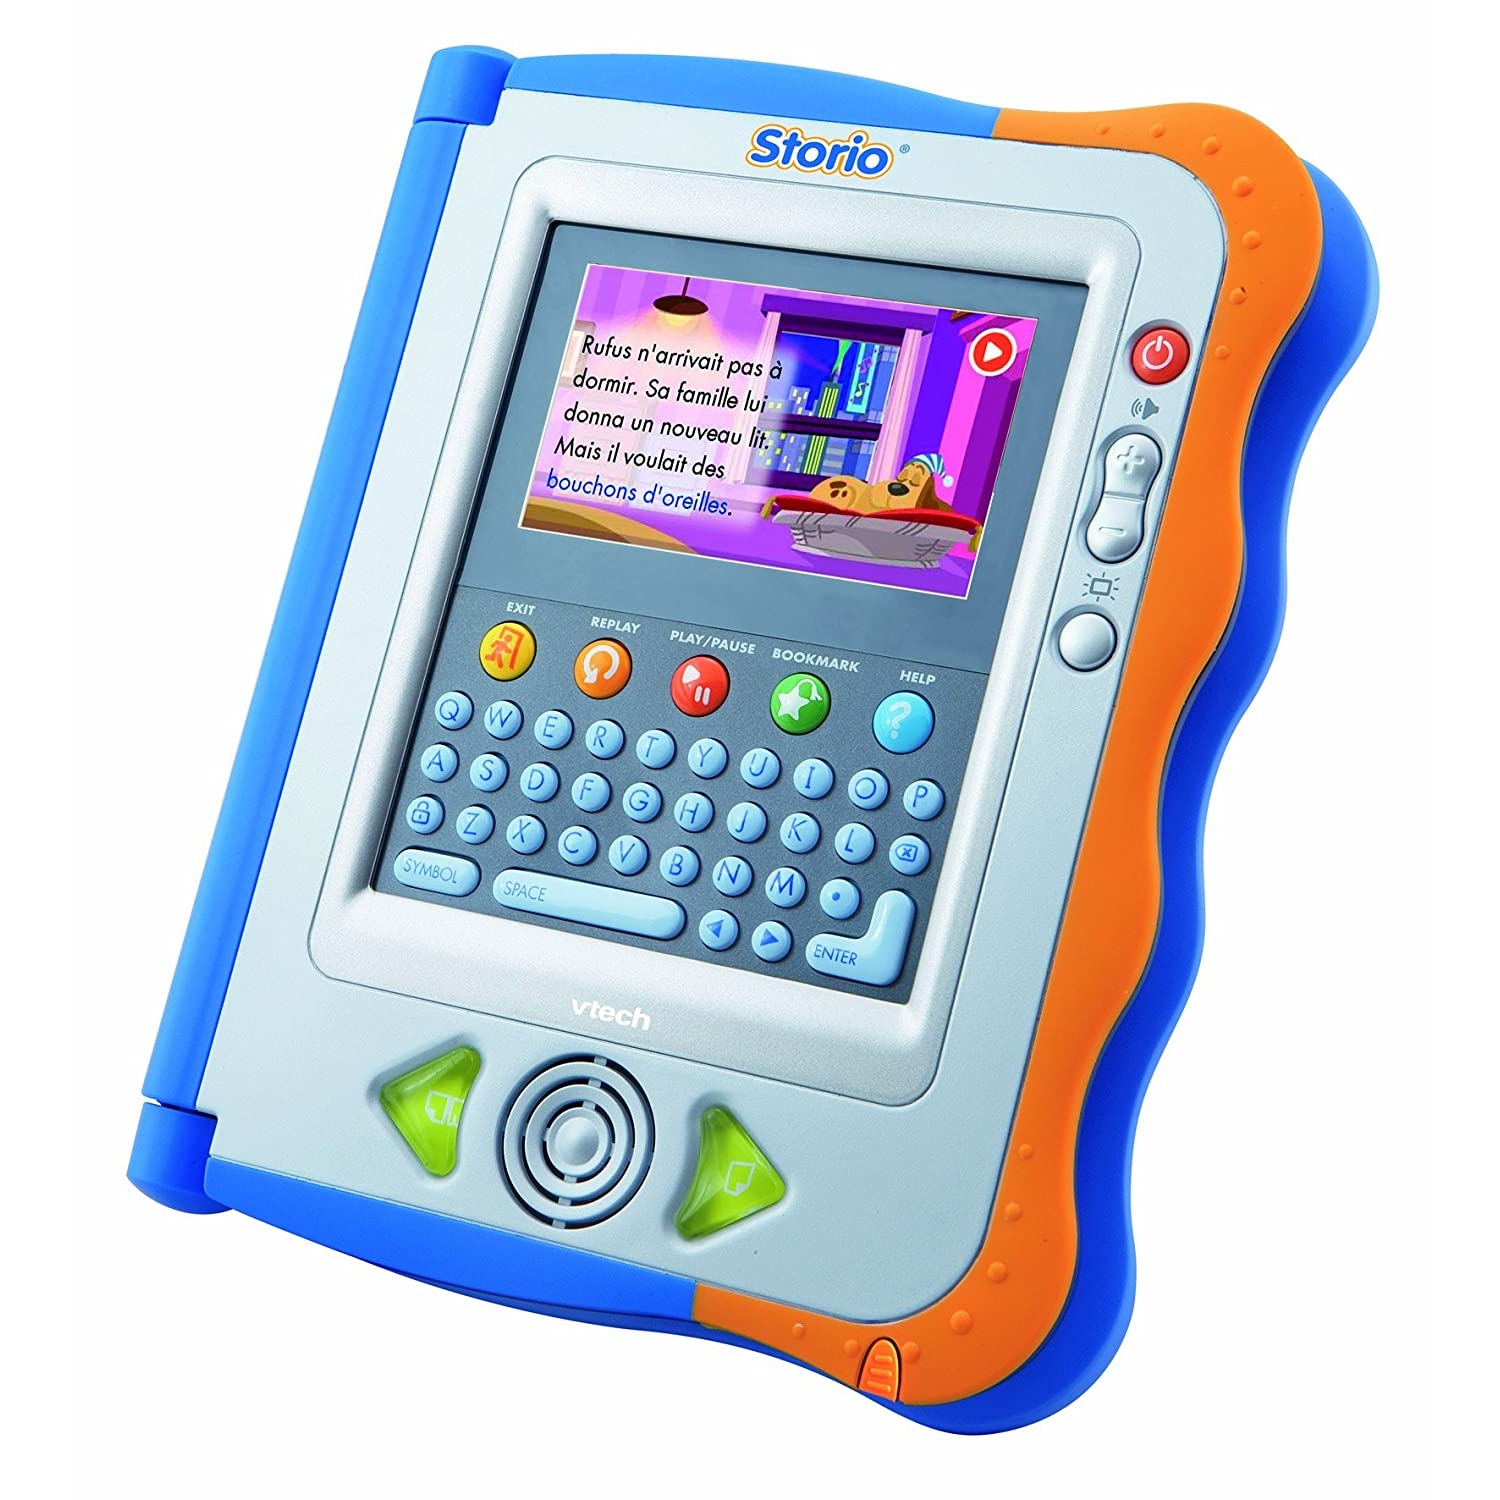 81ZGkjeLyTL. AA1500  Papa teste : la console Storio de Vtech   Bonus, jouez et gagnez une console Storio !